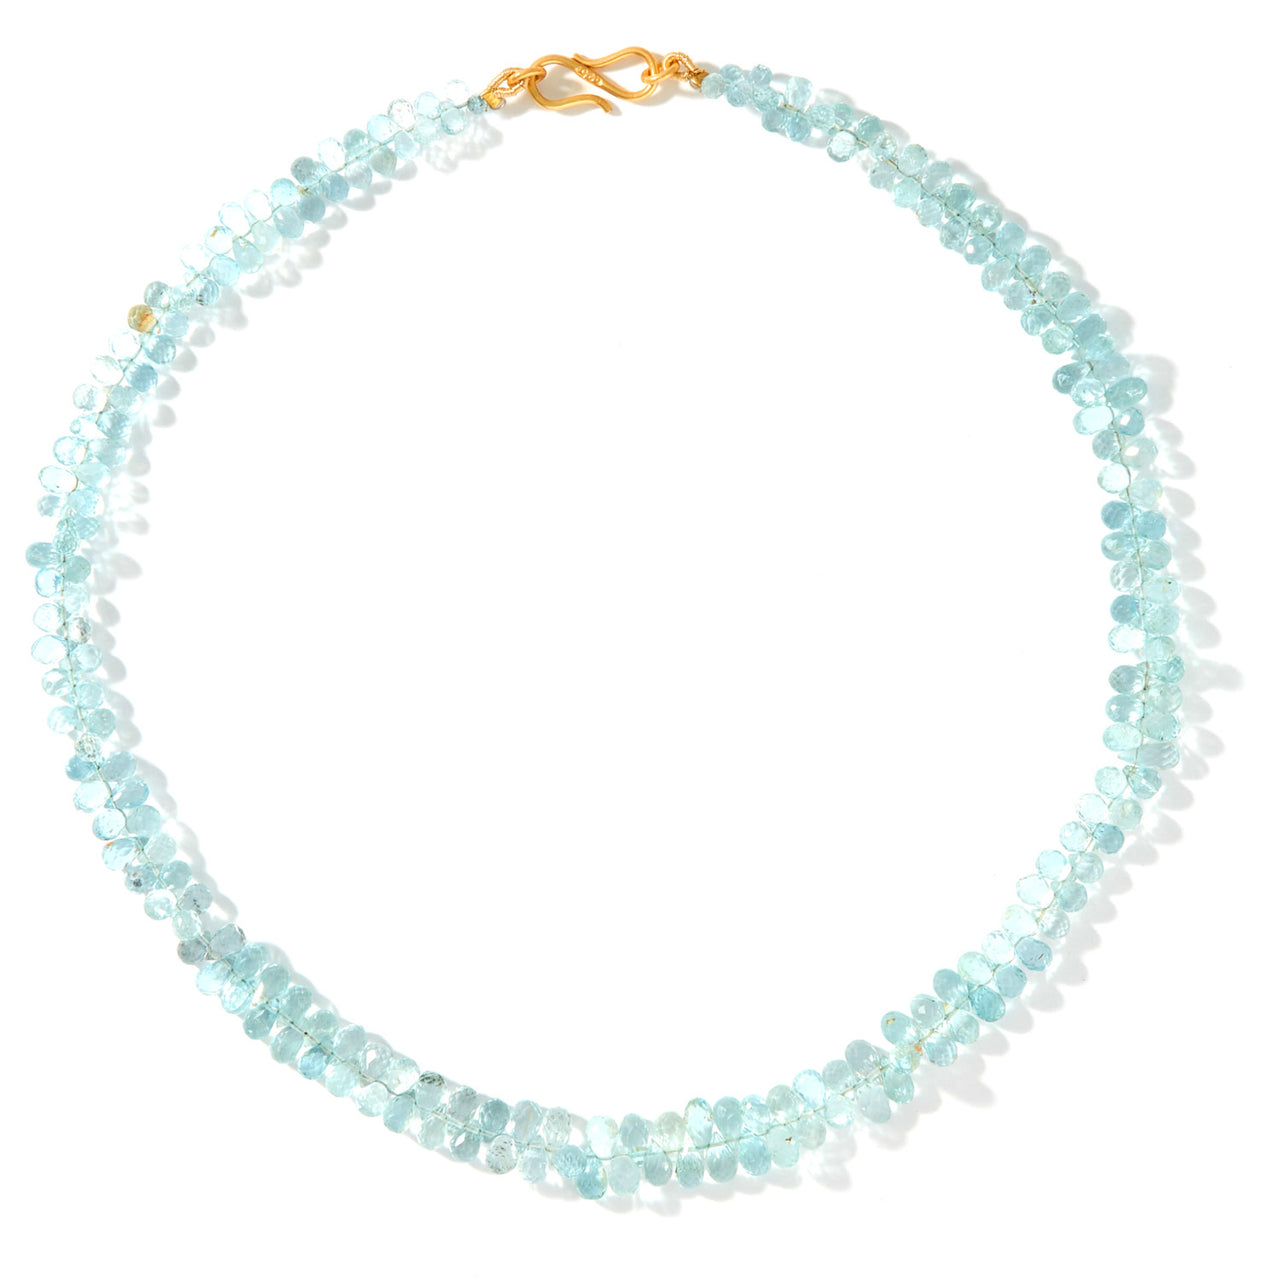 Aquamarine Ice Choker-Necklace-Jaipur Atelier